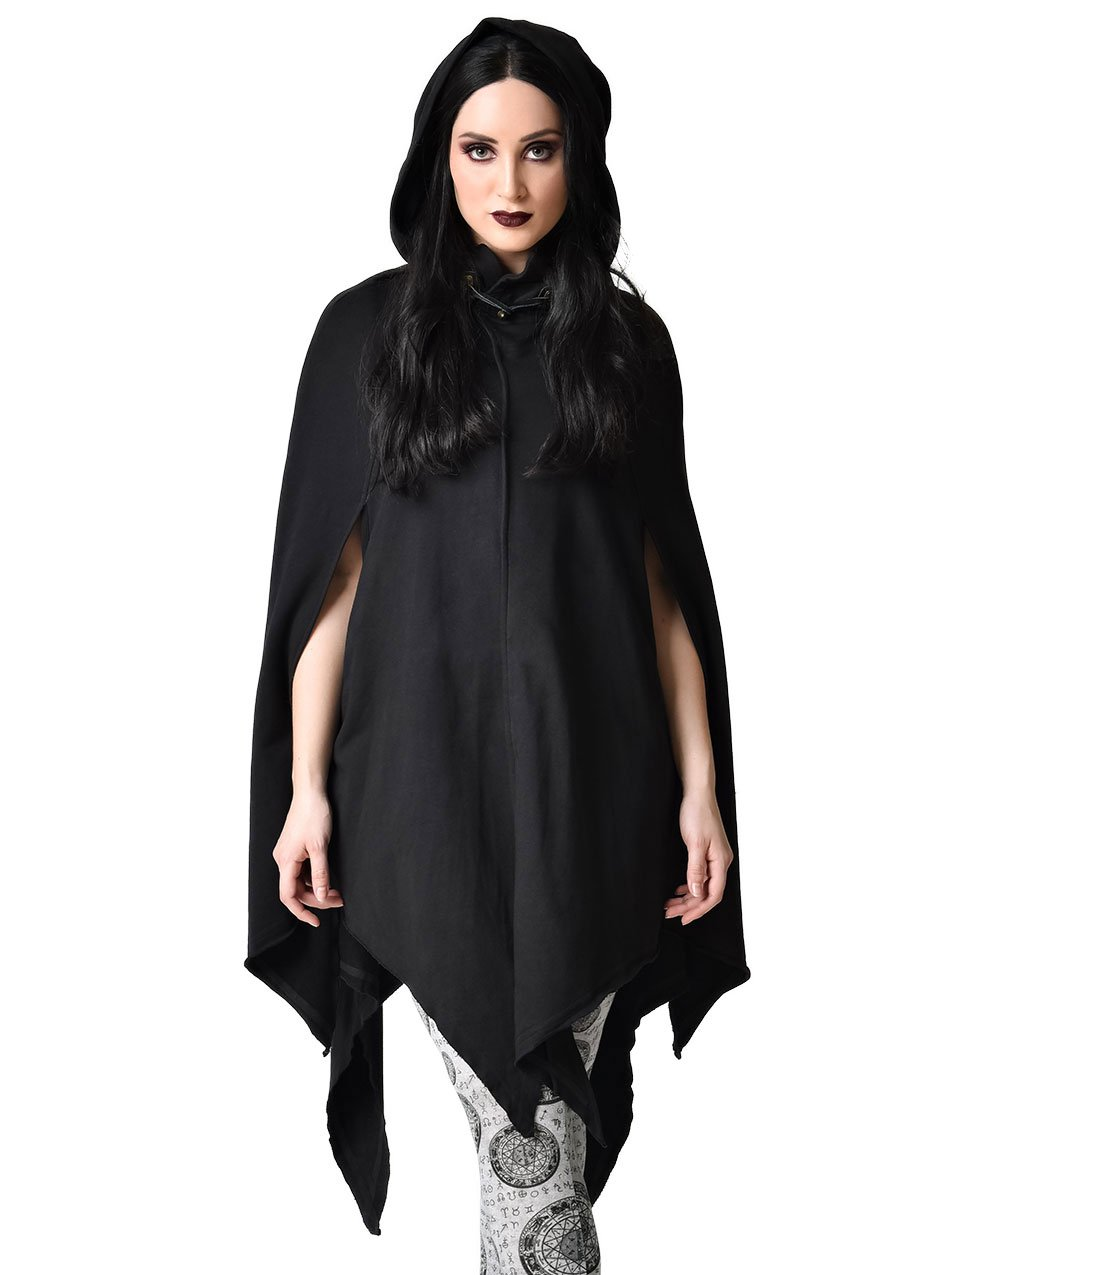 Unique Vintage Gothic Style Black Hooded & Tapered Cotton Cloak